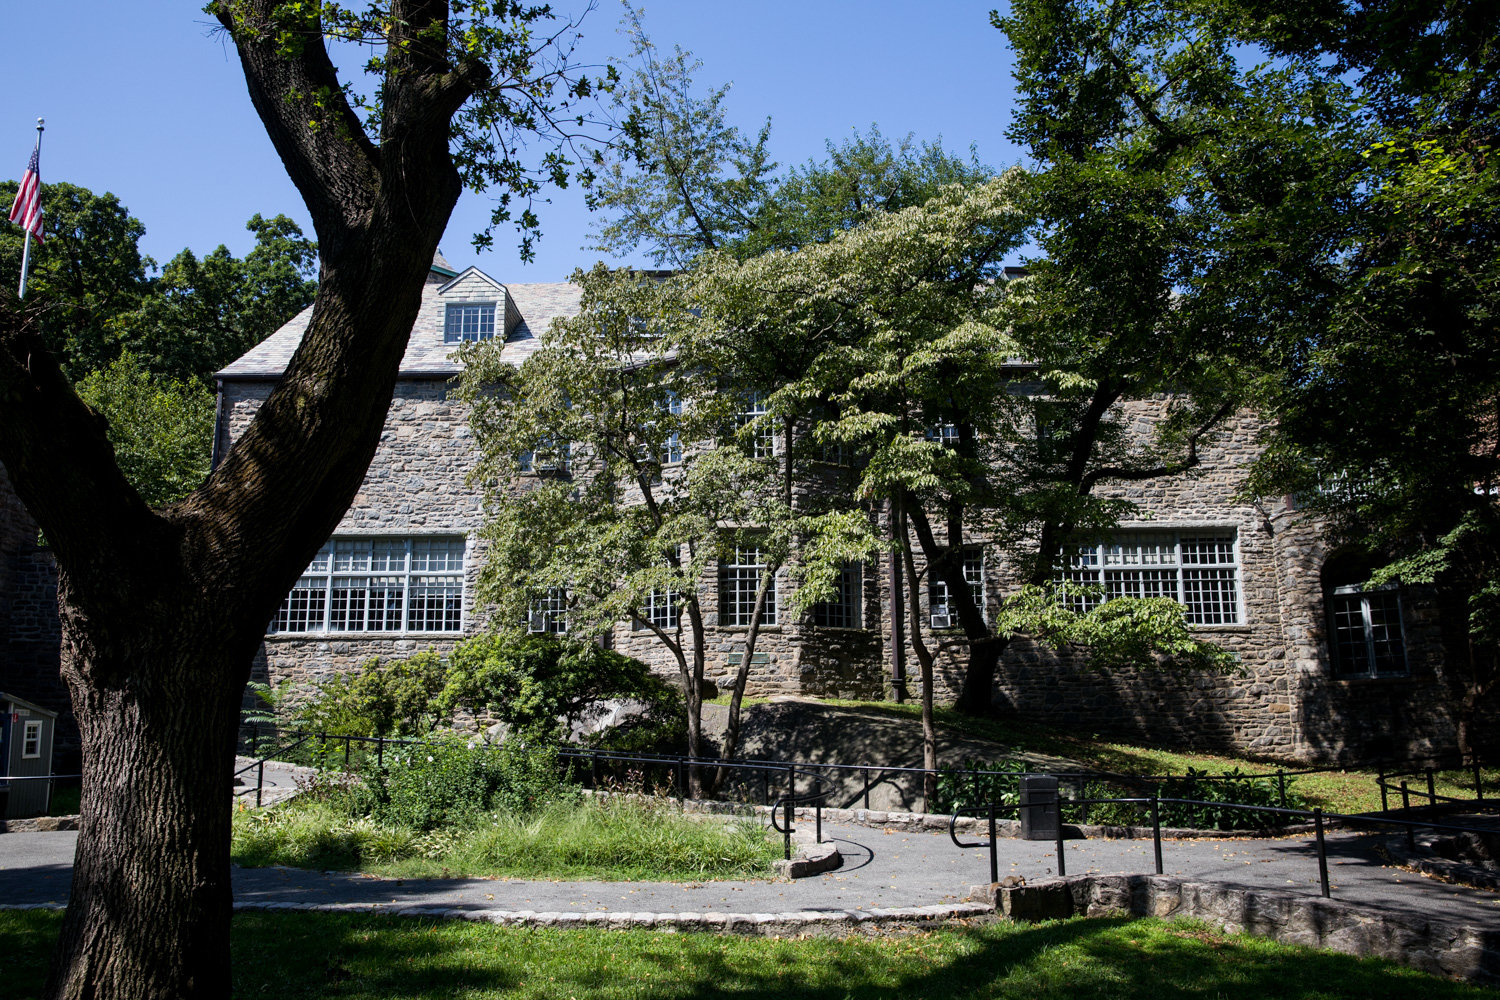 A year after perceived racial issues prompted a sit-in, Ethical Culture Fieldston School has found itself in the middle of another controversy after a guest speaker at the school made remarks some claim are anti-Semitic. The school subsequently fired history teacher J.B. Brager, after they responded on social media with comments some have labeled as anti-Israel.